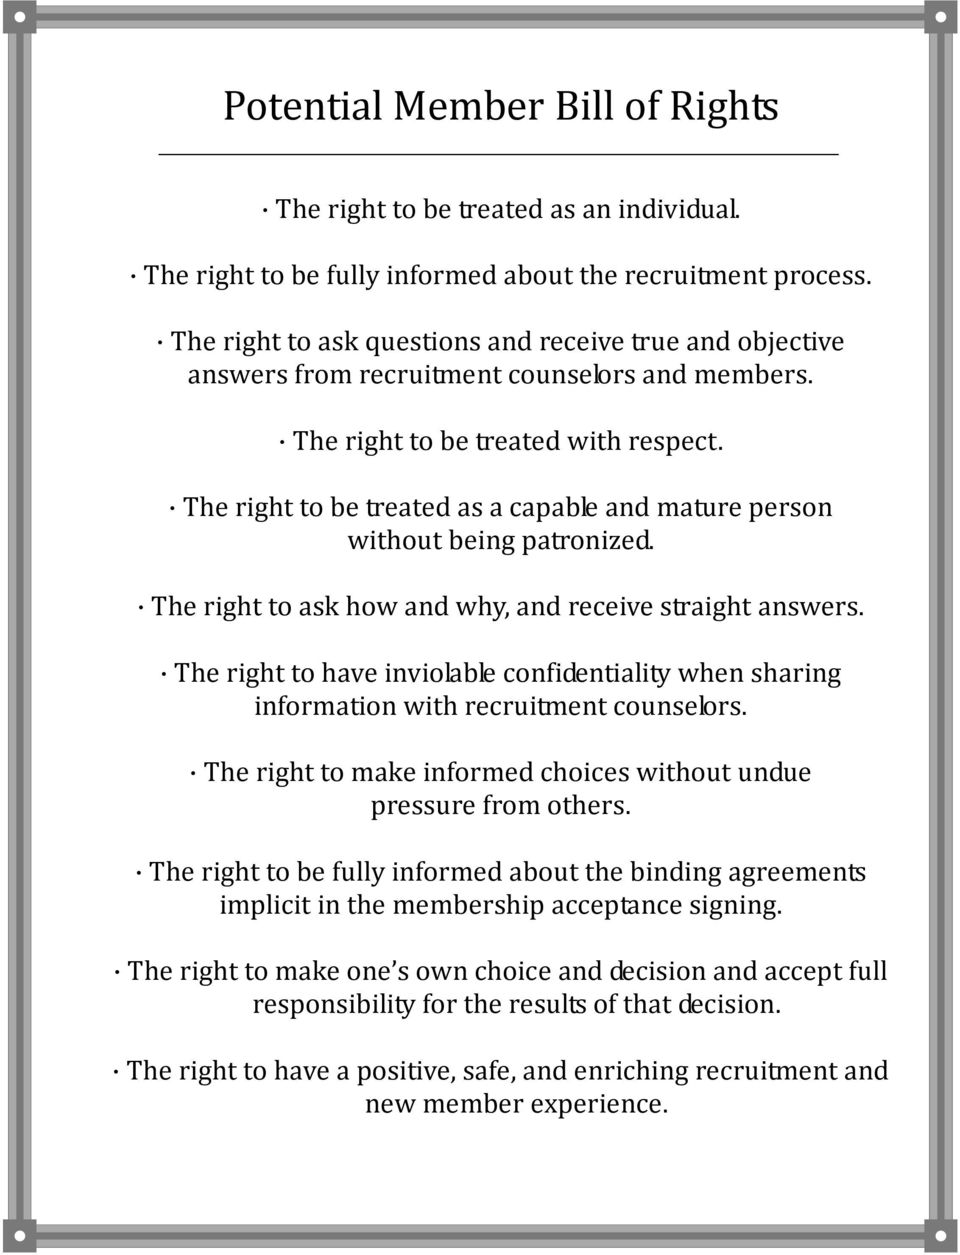 The right to be treated as a capable and mature person without being patronized. The right to ask how and why, and receive straight answers.